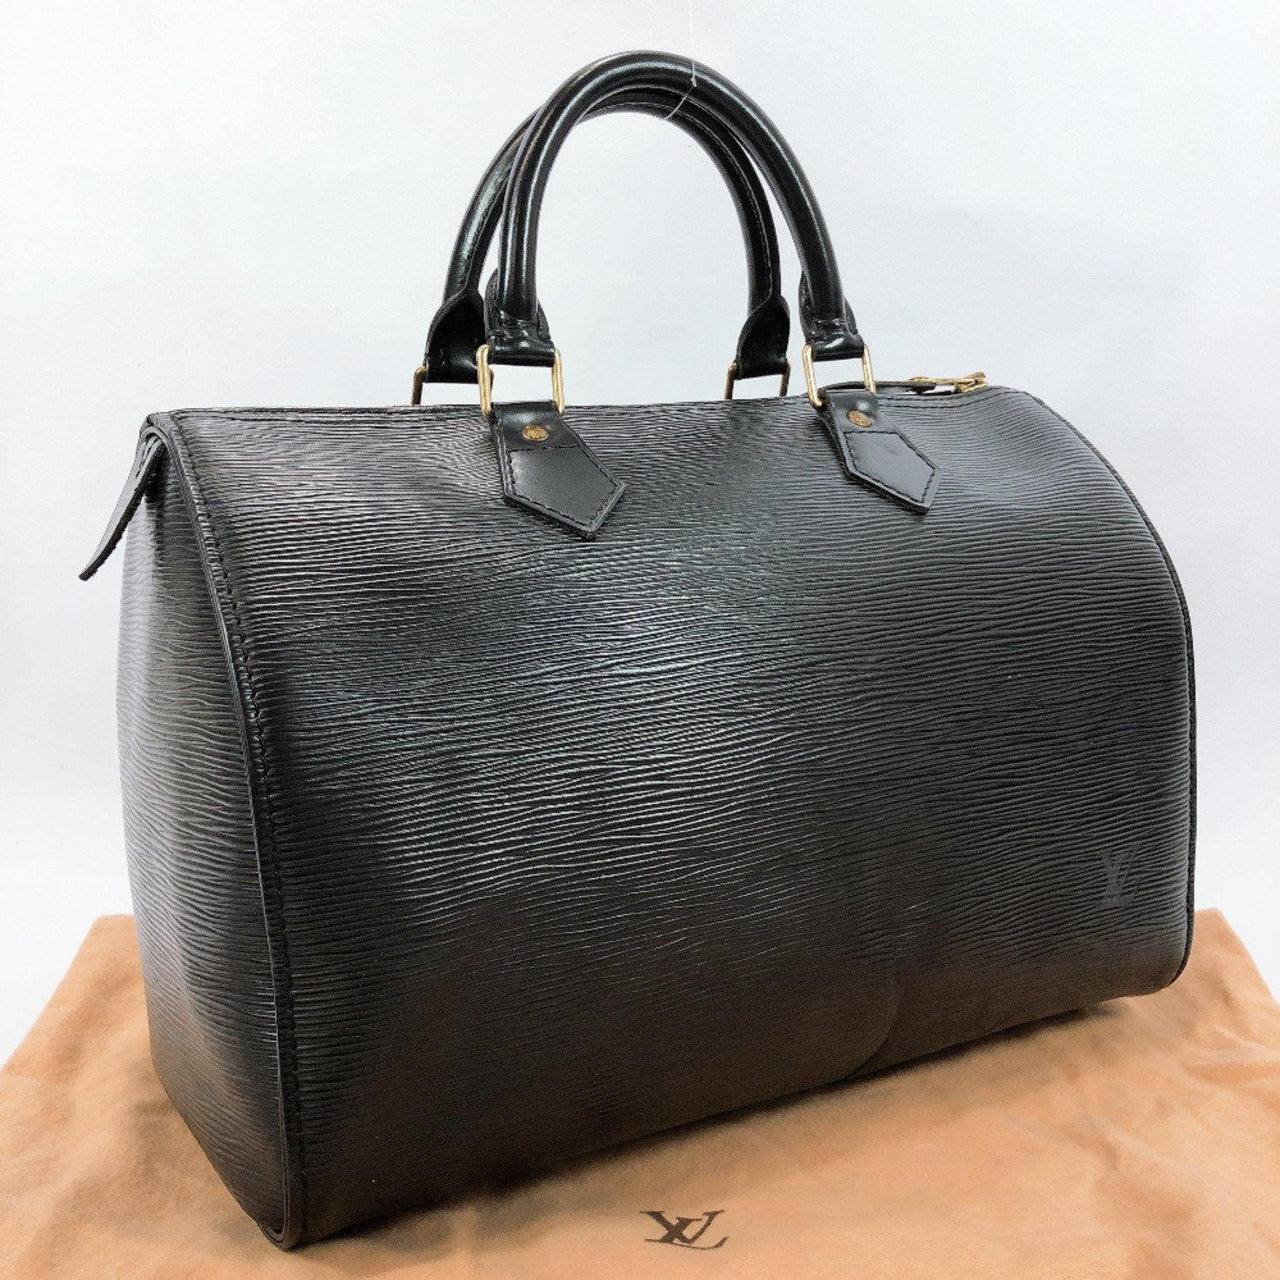 LOUIS VUITTON Handbag M59222 Speedy 30 vintage Epi Leather black Women Used - JP-BRANDS.com